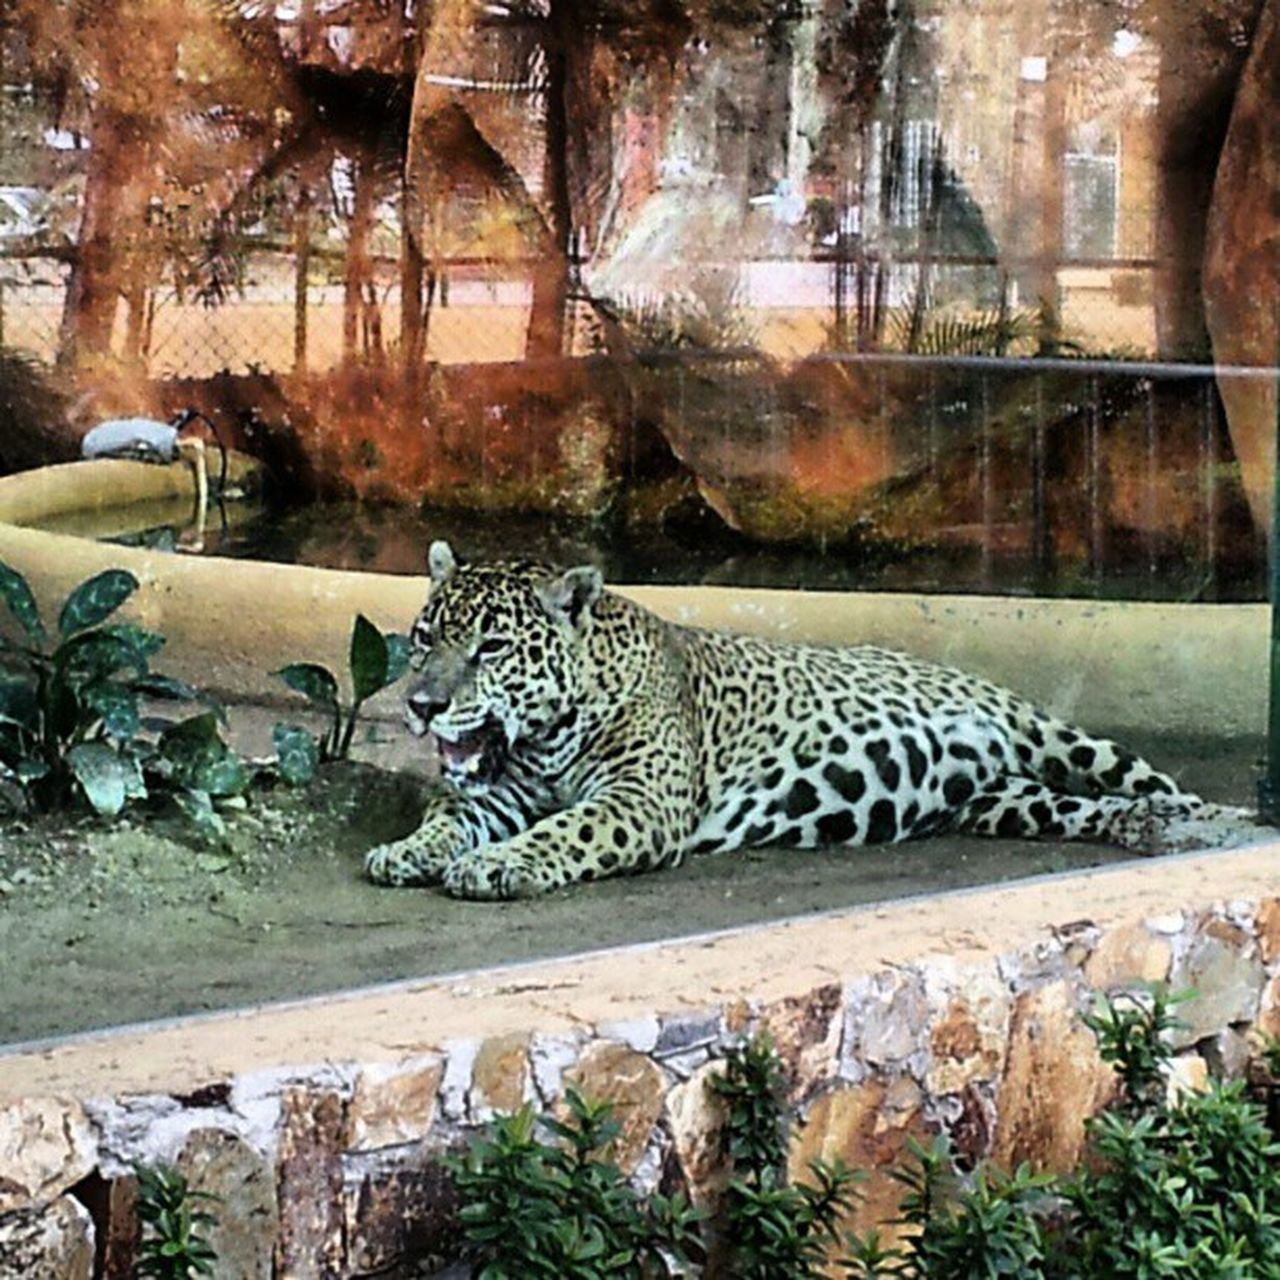 animals in the wild, leopard, rock - object, day, animal themes, portrait, nature, no people, safari animals, mammal, outdoors